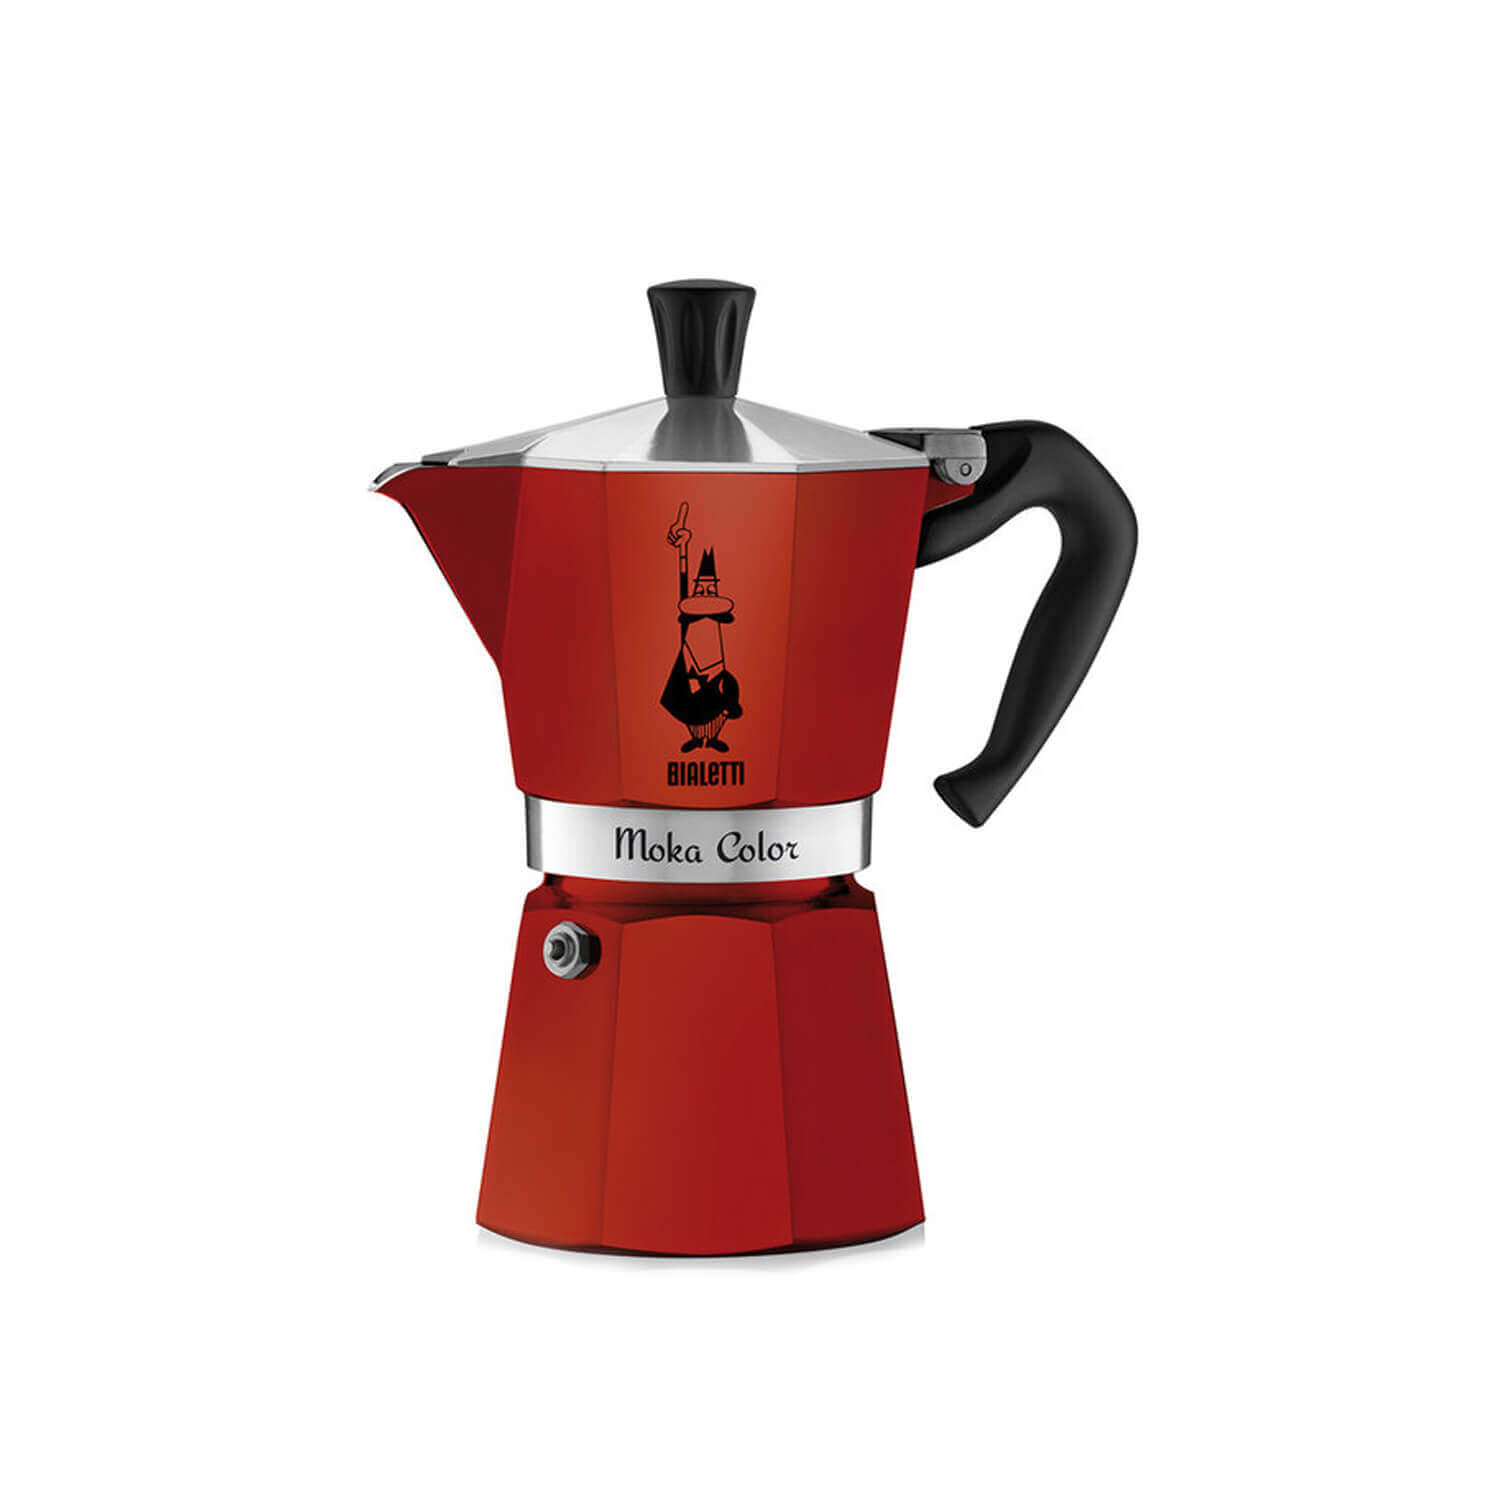 Bialetti - Moka Express - Red - 3 Cups